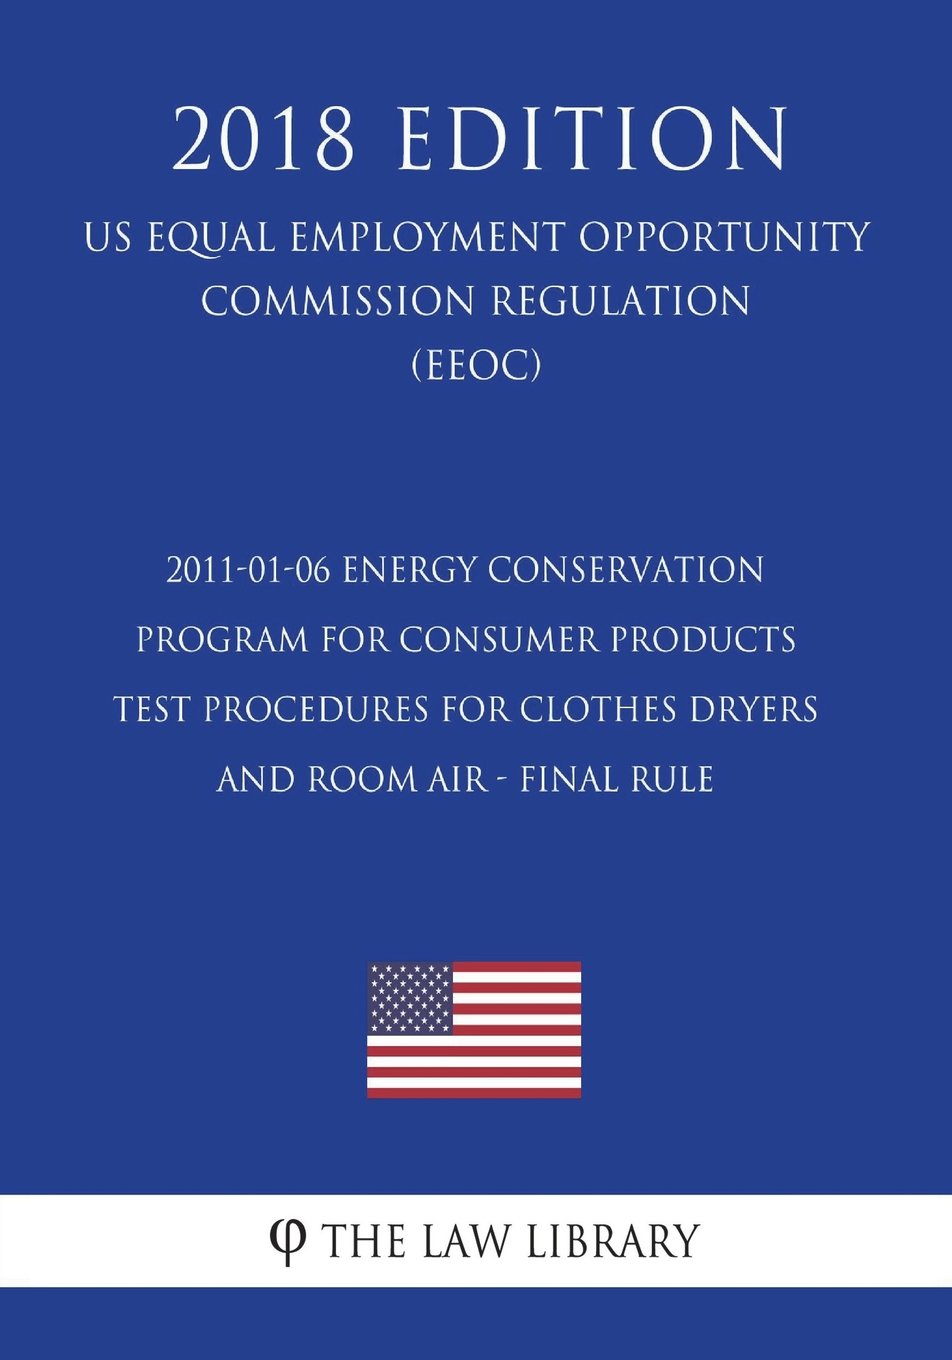 2011-01-06 Energy Conservation Program for Consumer Products - Test Procedures for Clothes Dryers and Room Air - Final rule (US Energy Efficiency and ... Office Regulation) (EERE) (2018 Edition) ebook